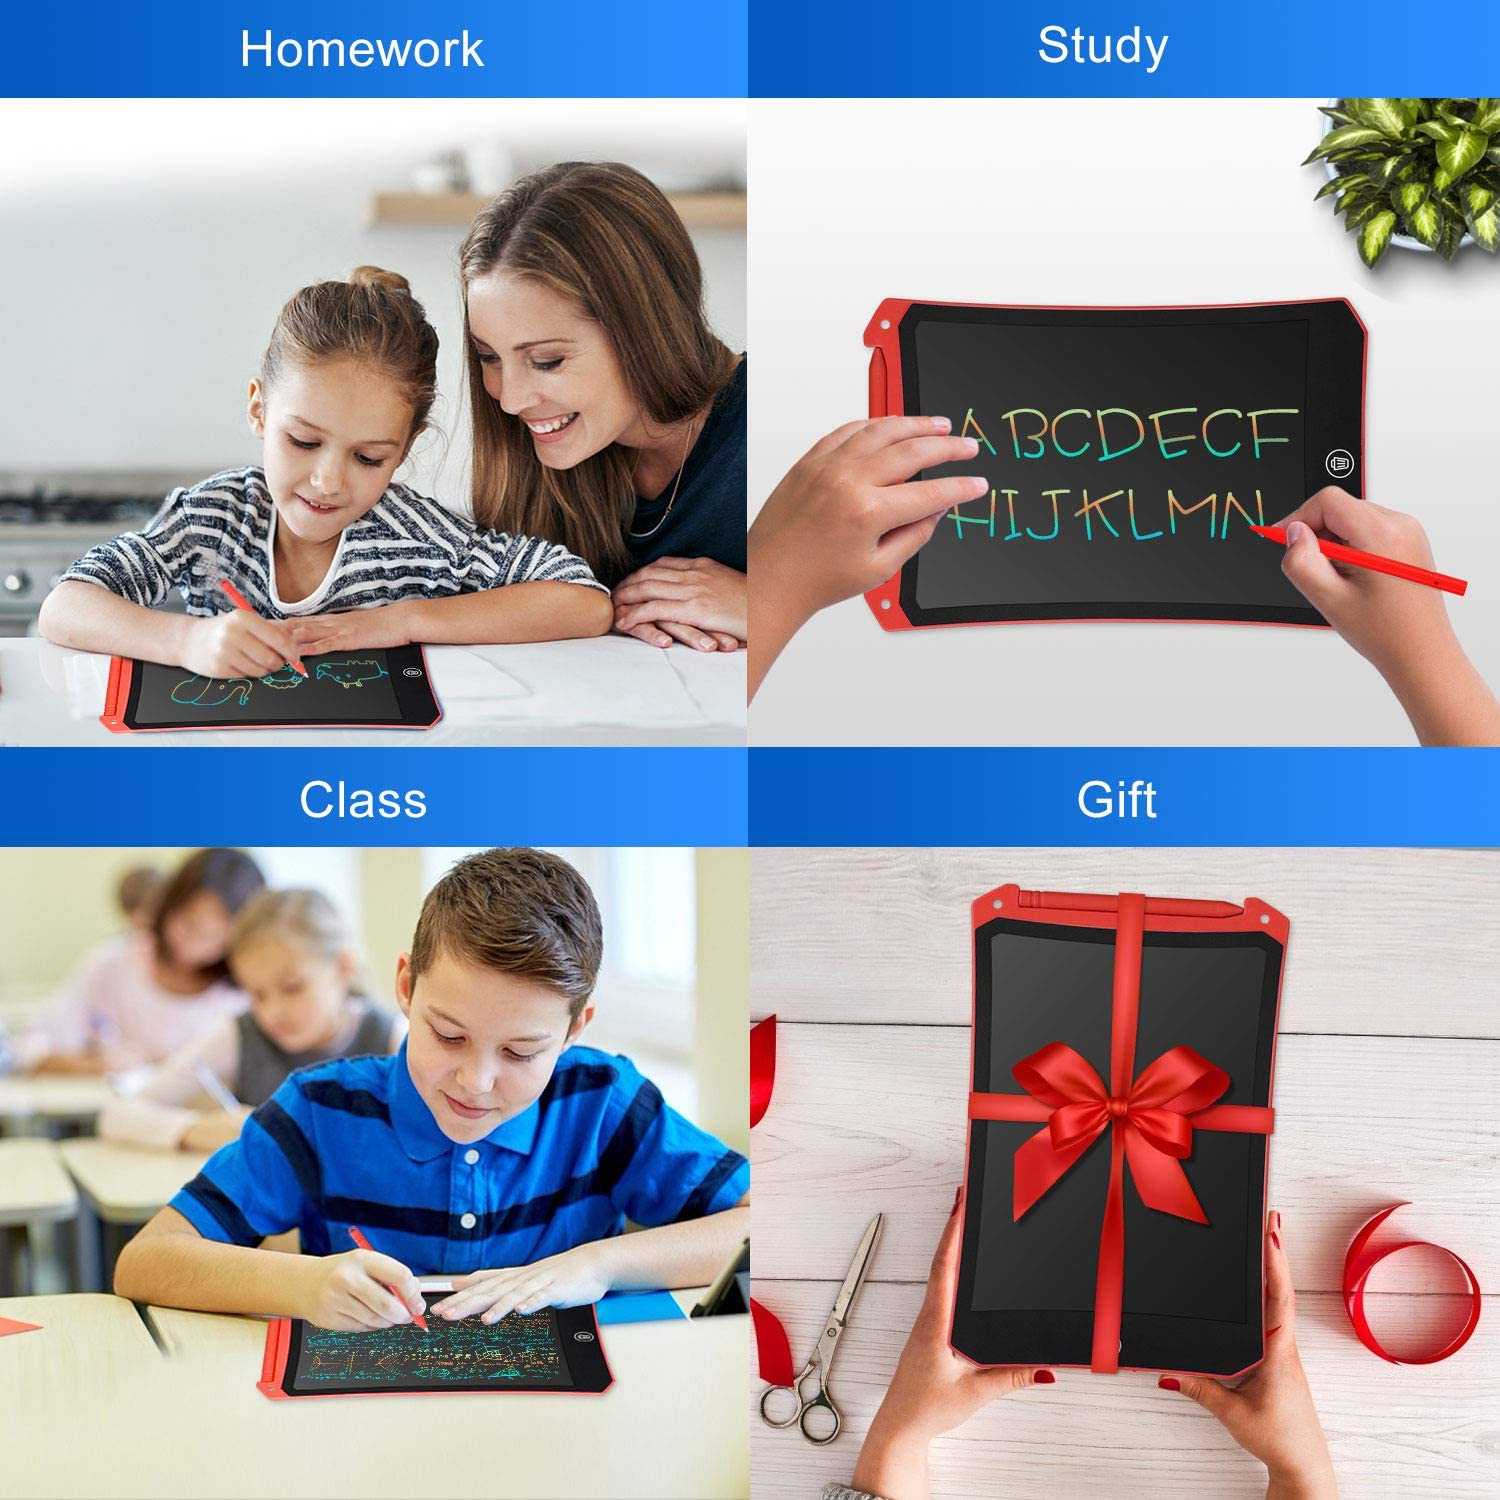 Cimetech 12-Inch Handwriting Paper Drawing Tablet Gift for Kids and Adults at Home,School and Office Newest LCD Writing Tablet Electronic Digital Writing /&Colorful Screen Doodle Board Pink